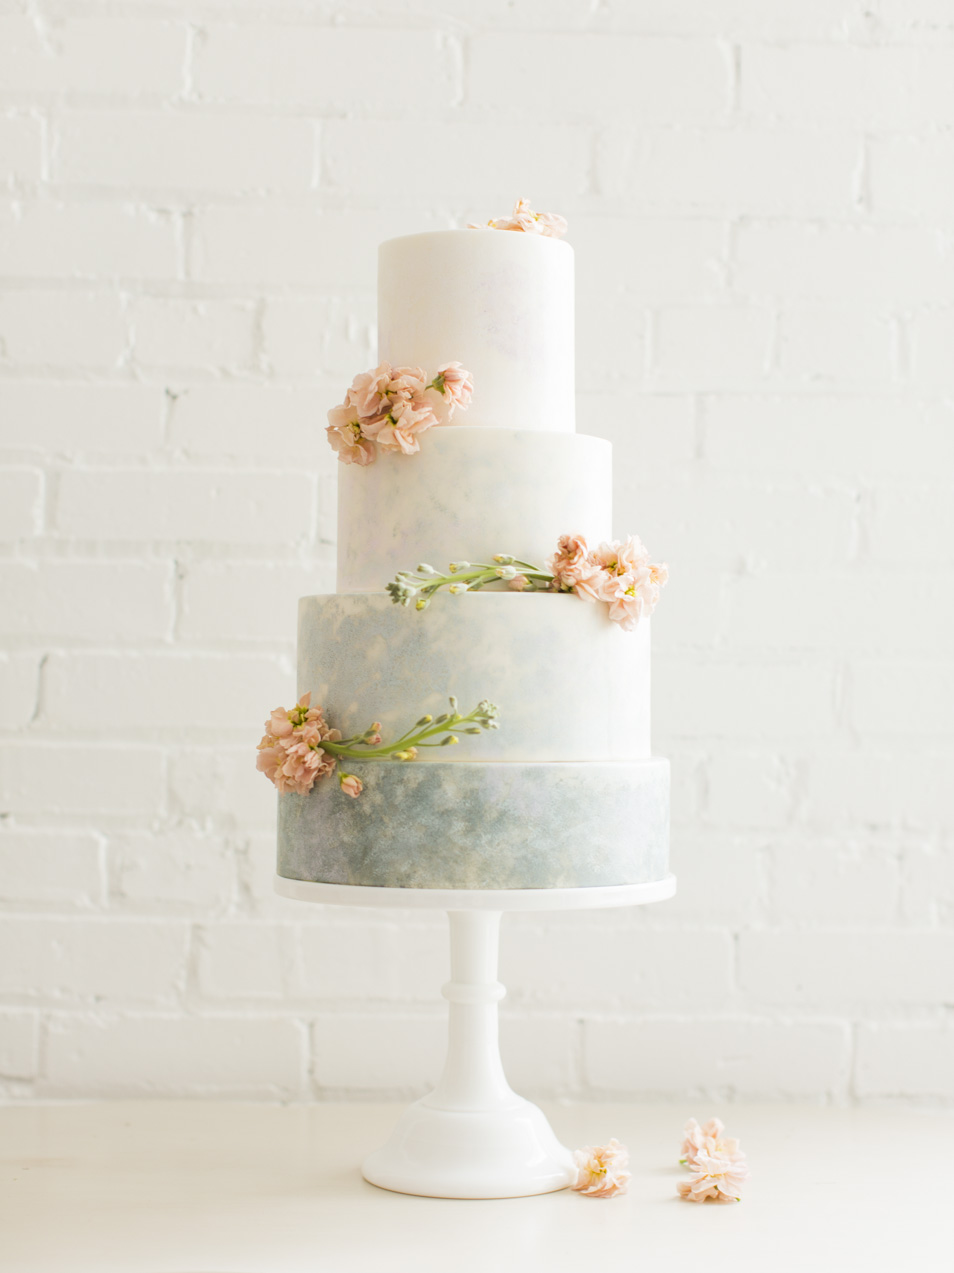 Monet Inspired Wedding Cake | Michelle Leo Events